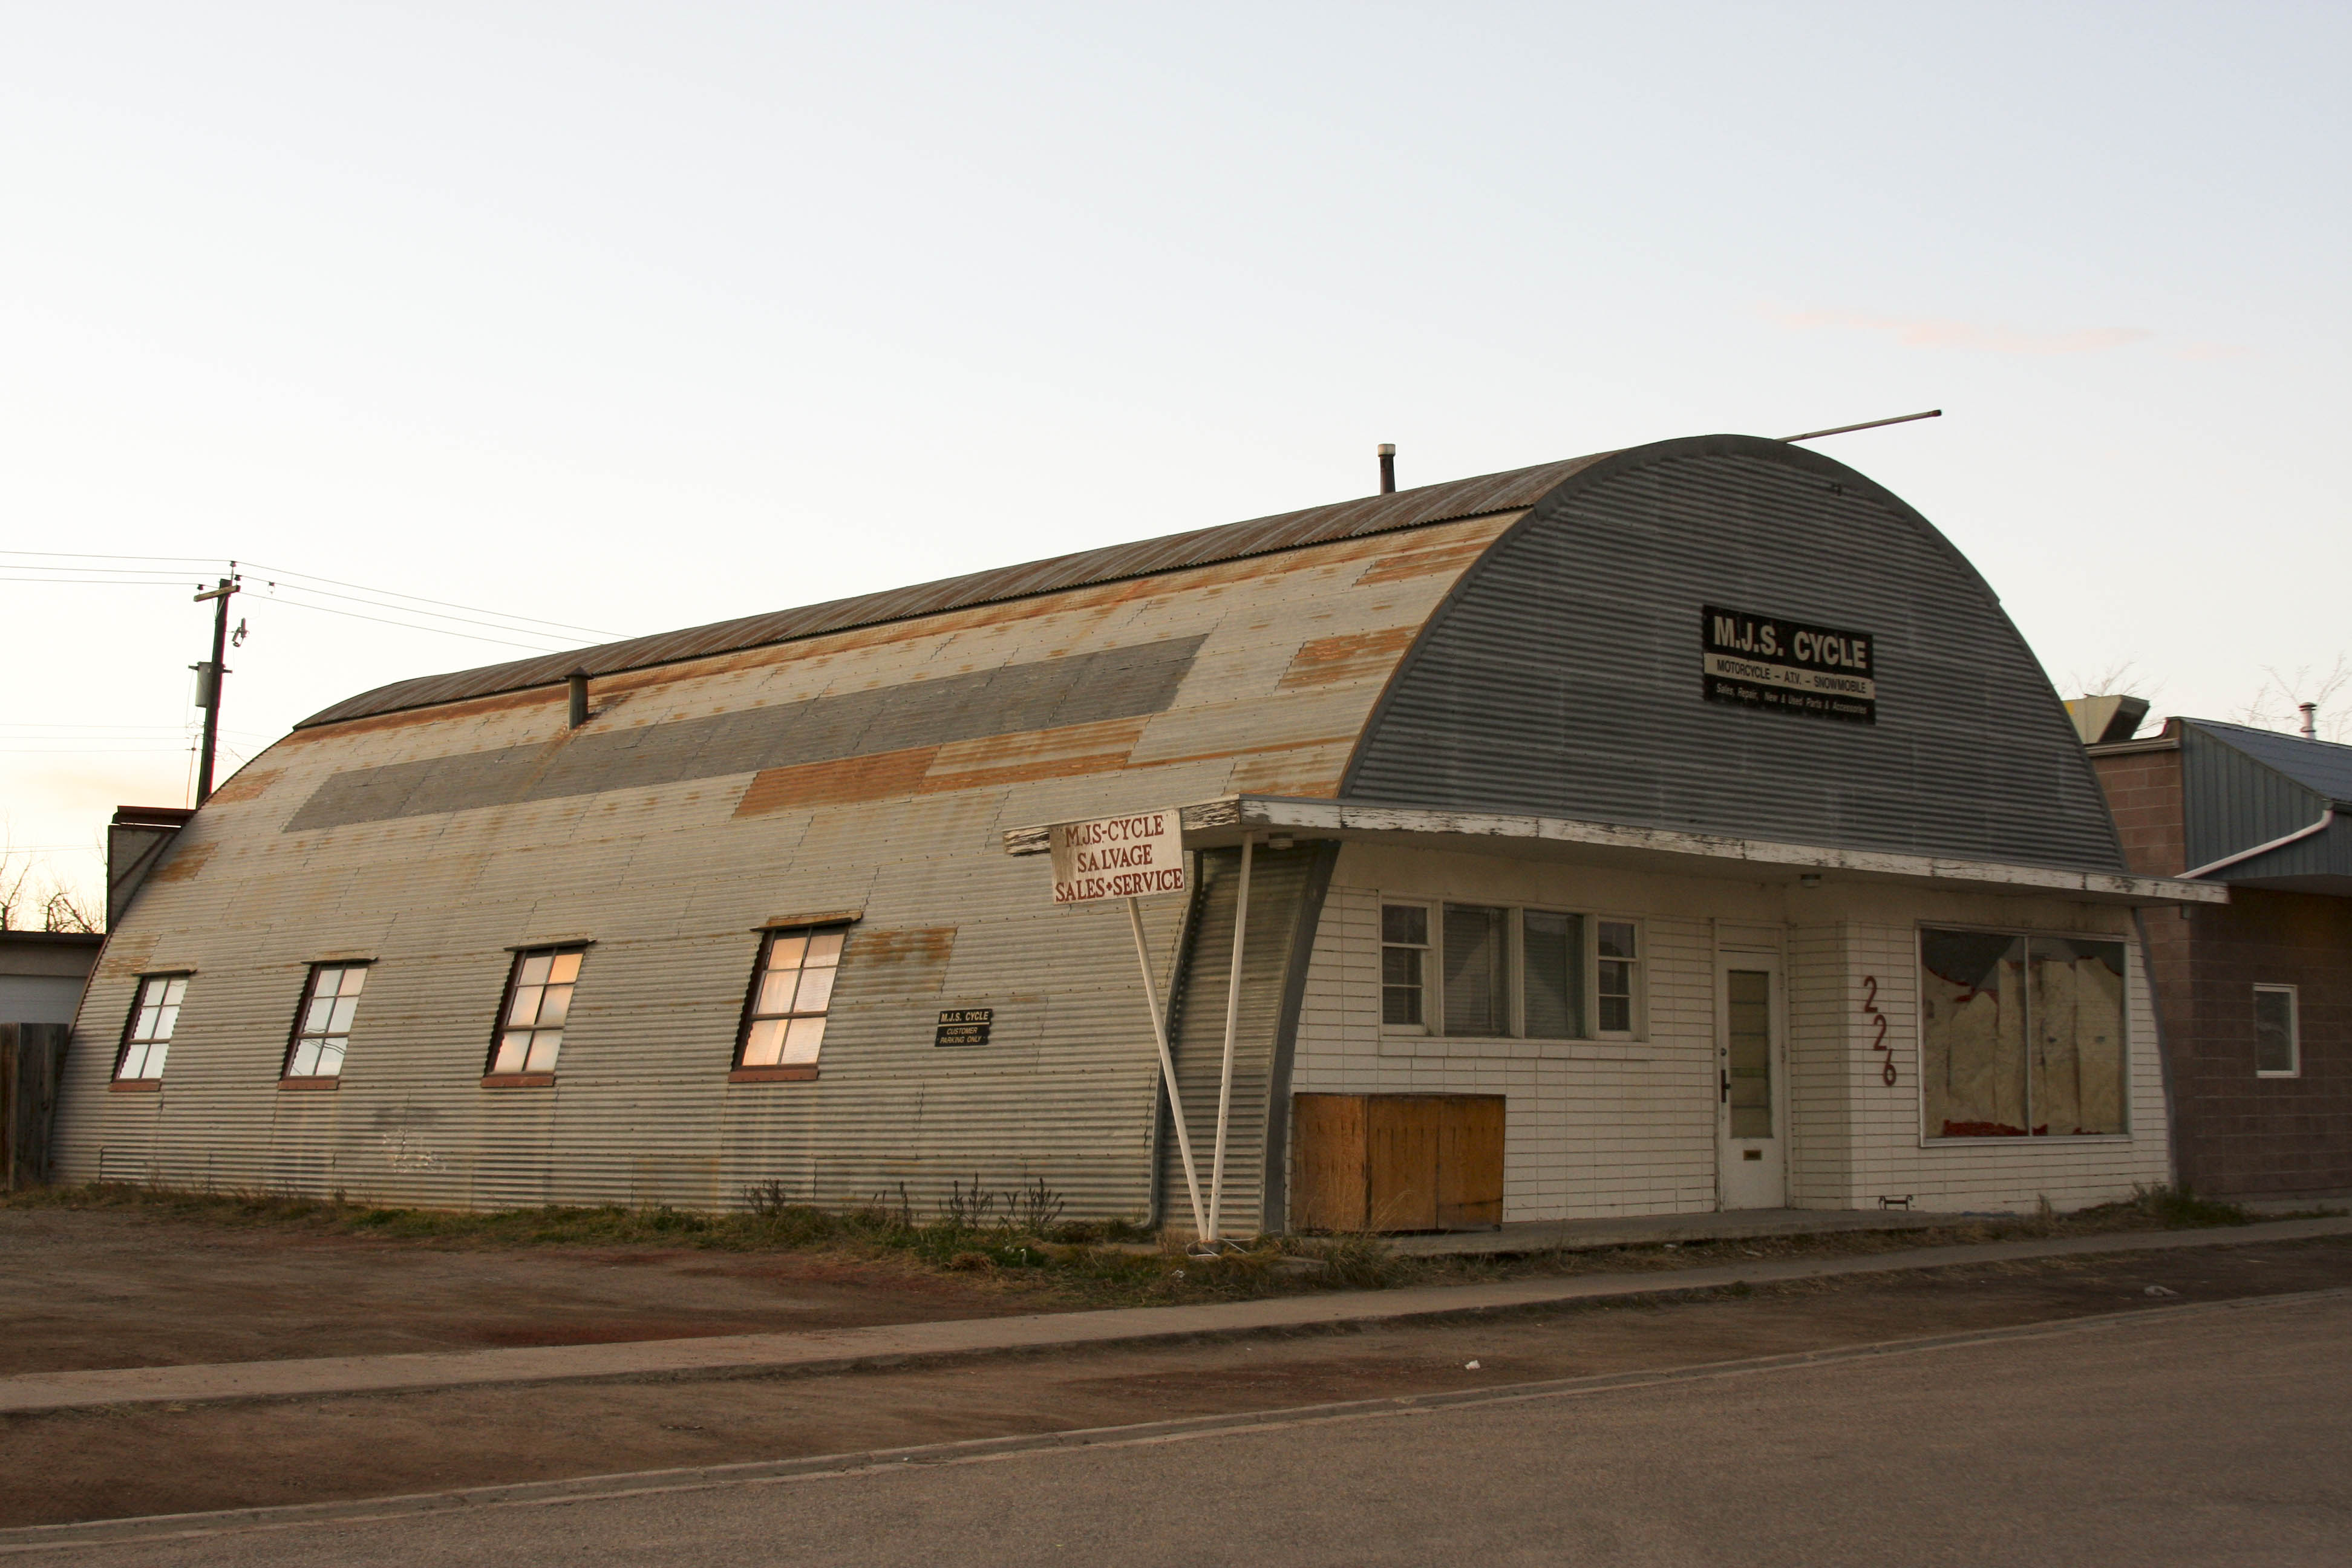 Quonset hut building quonset hut building recently for Quonset hut